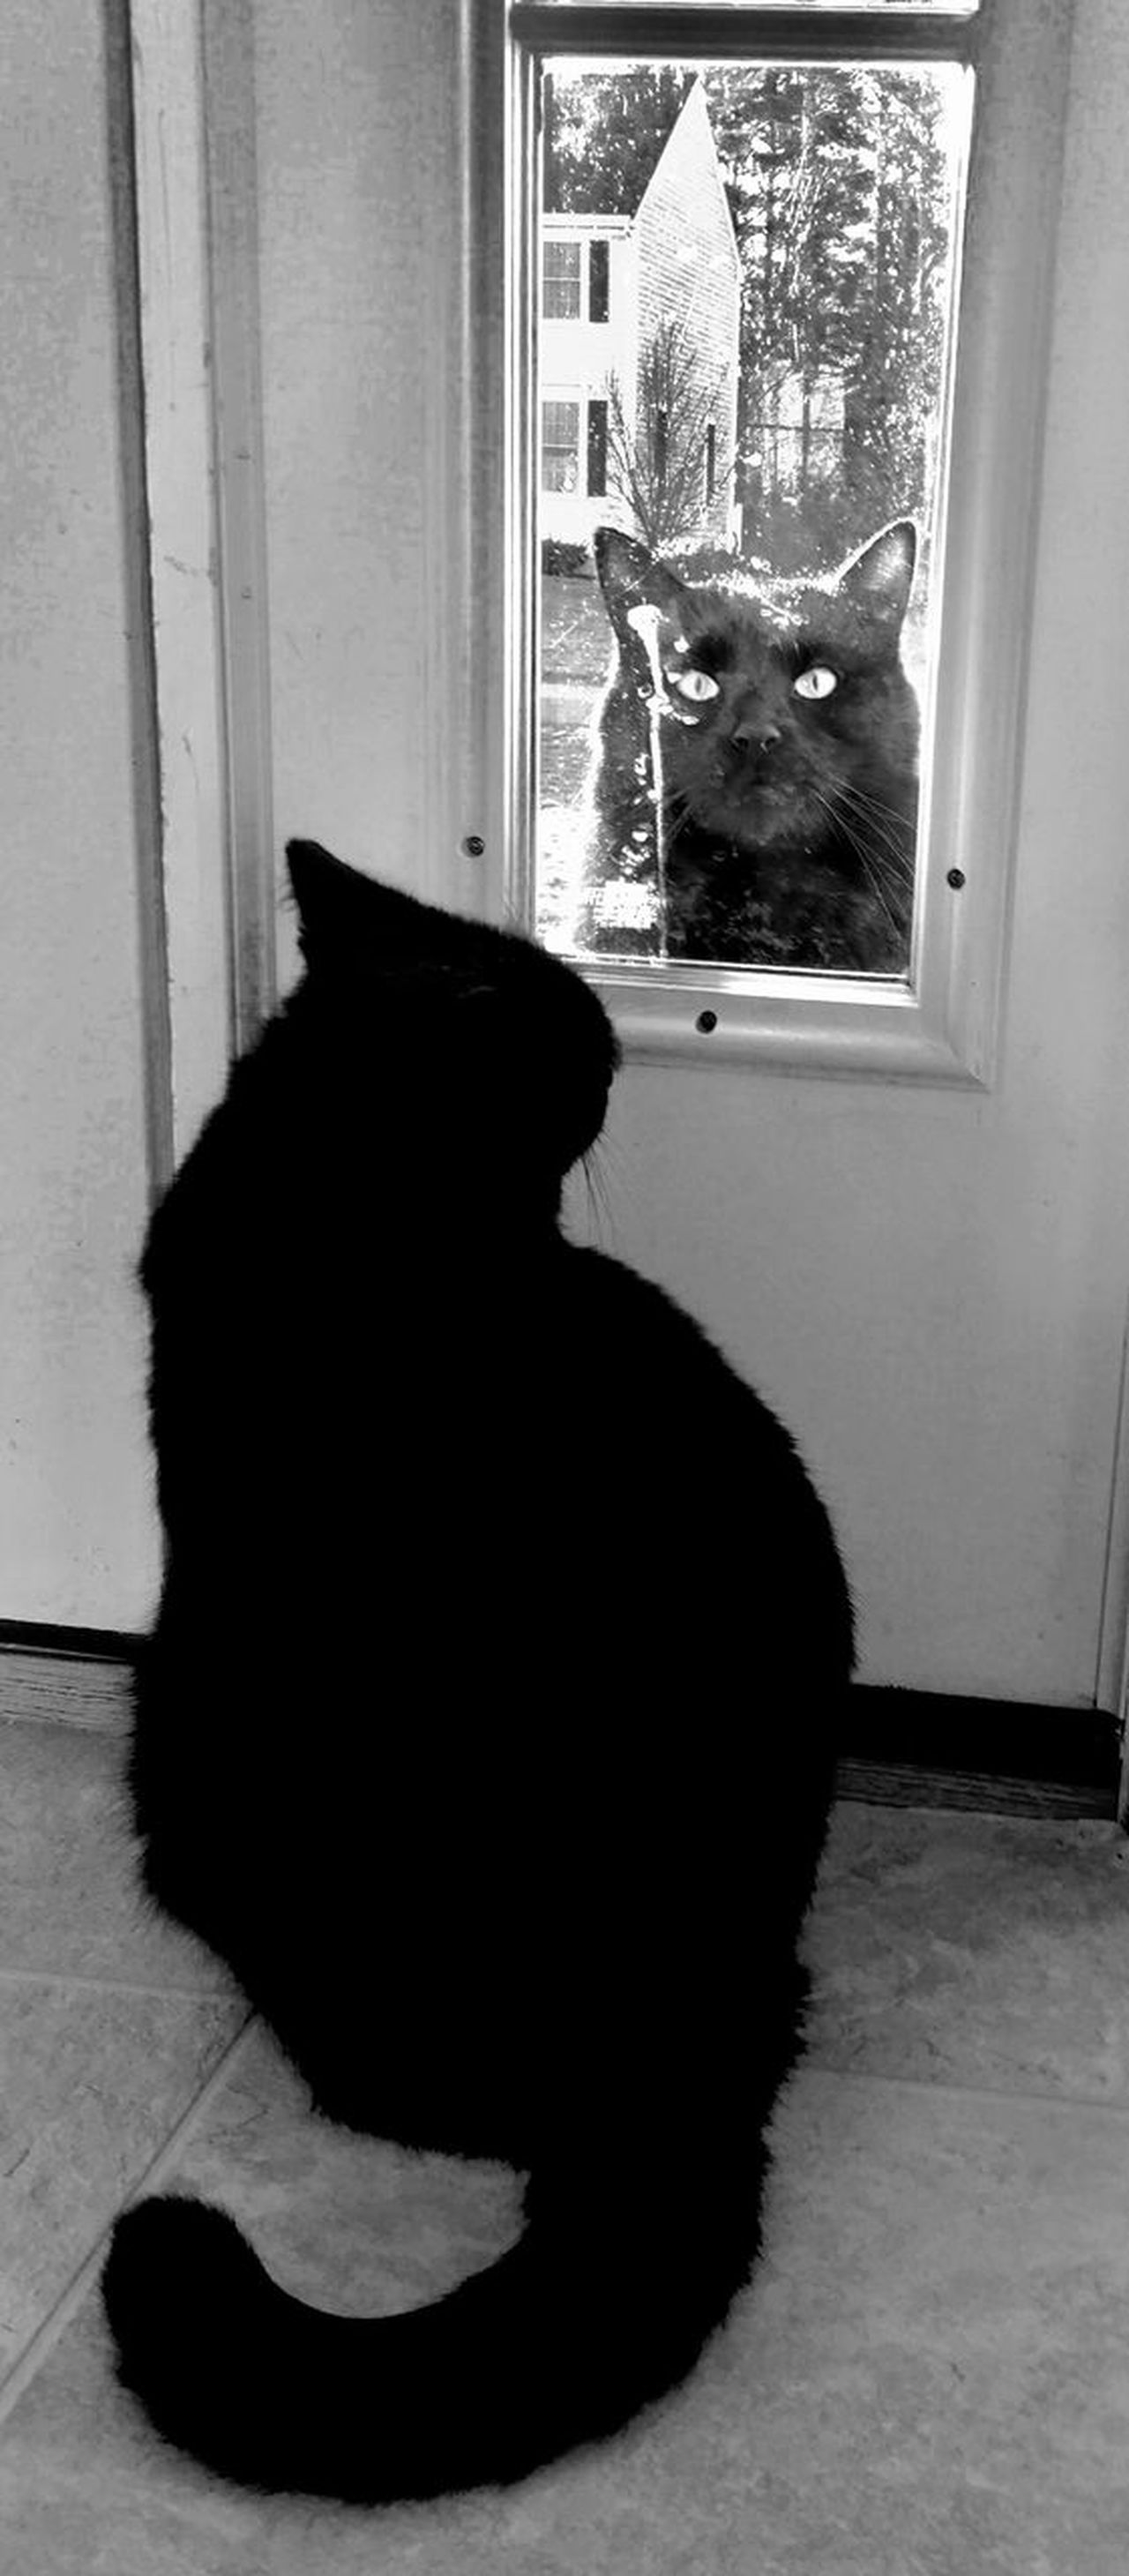 Unhappy Cat Window Sitting Indoors  Domestic Animals Animal Themes Pets Domestic Cat Cats Of EyeEm Cats Cat♡ Cats 🐱 Black Cats Black Cats Are Beautiful